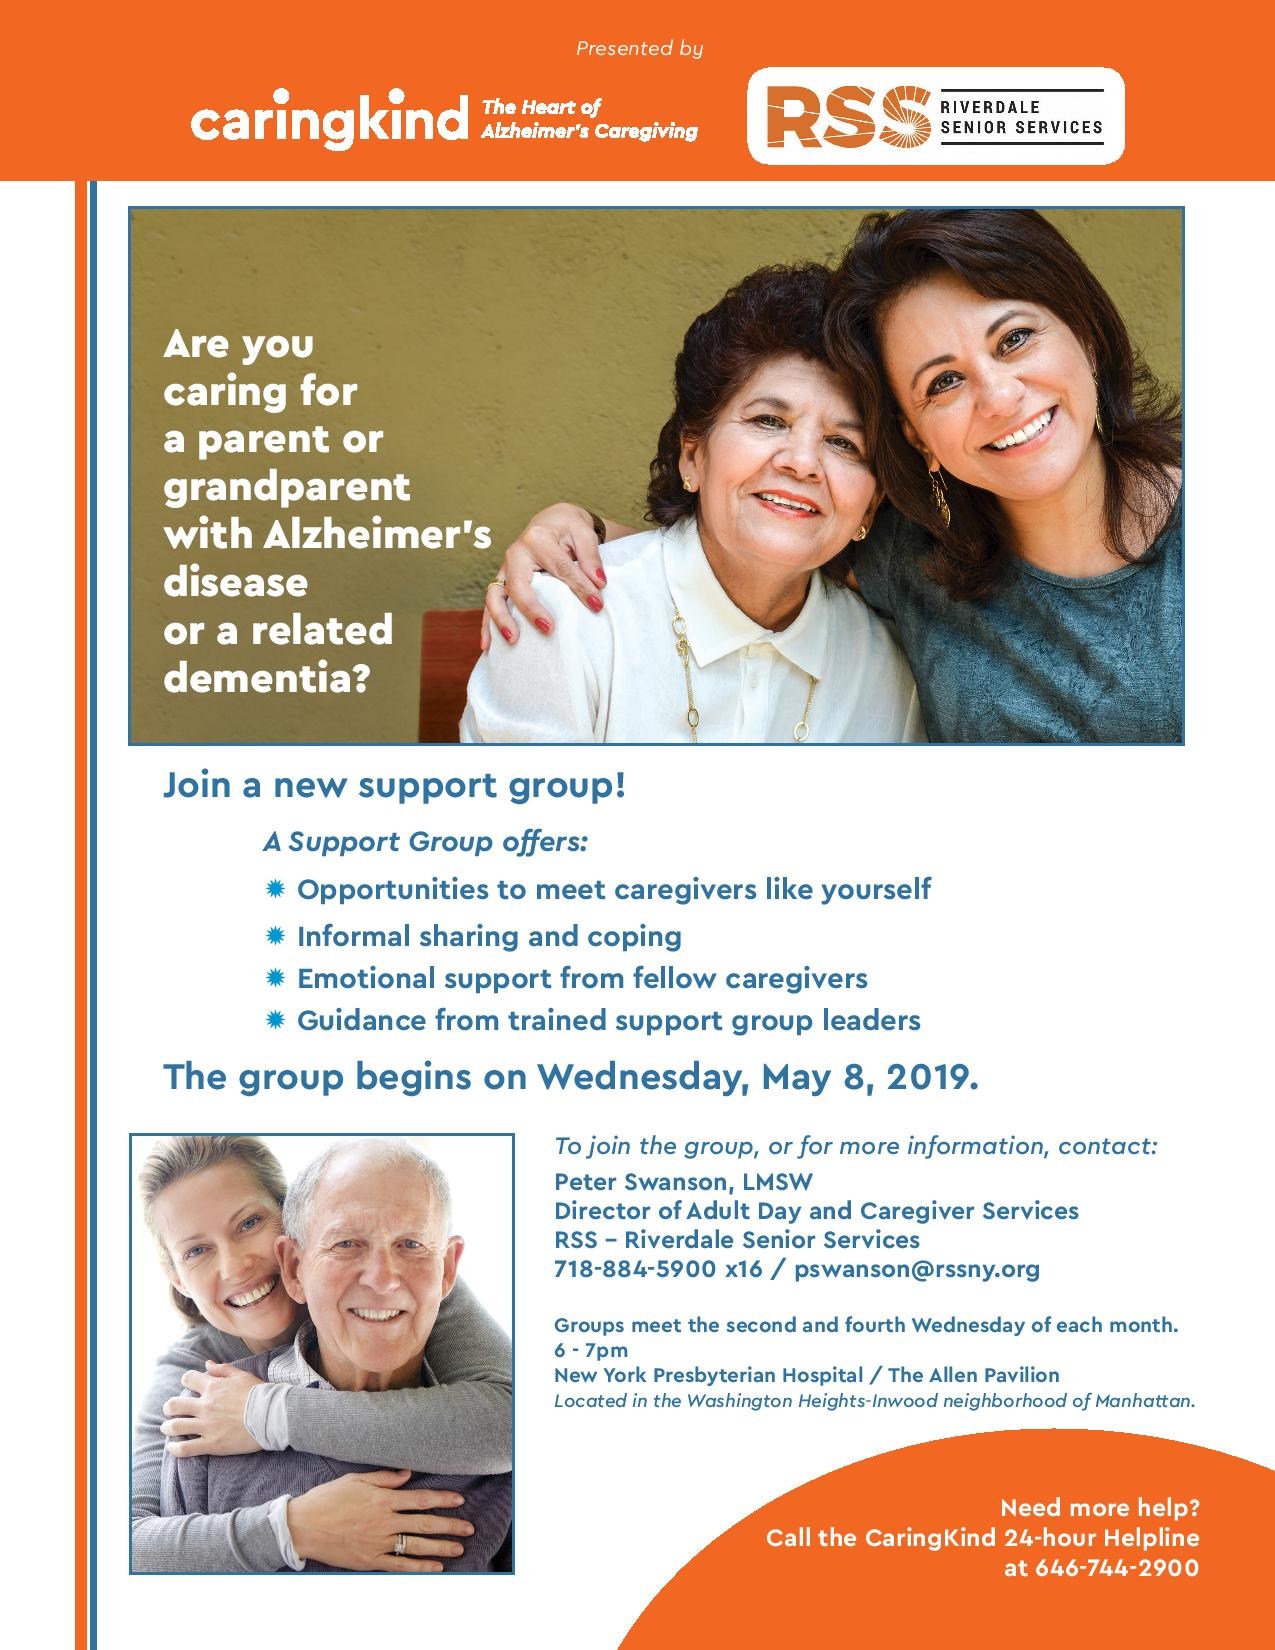 Support Group for children and grandchildren with Alzheimer's disease or a related dementia